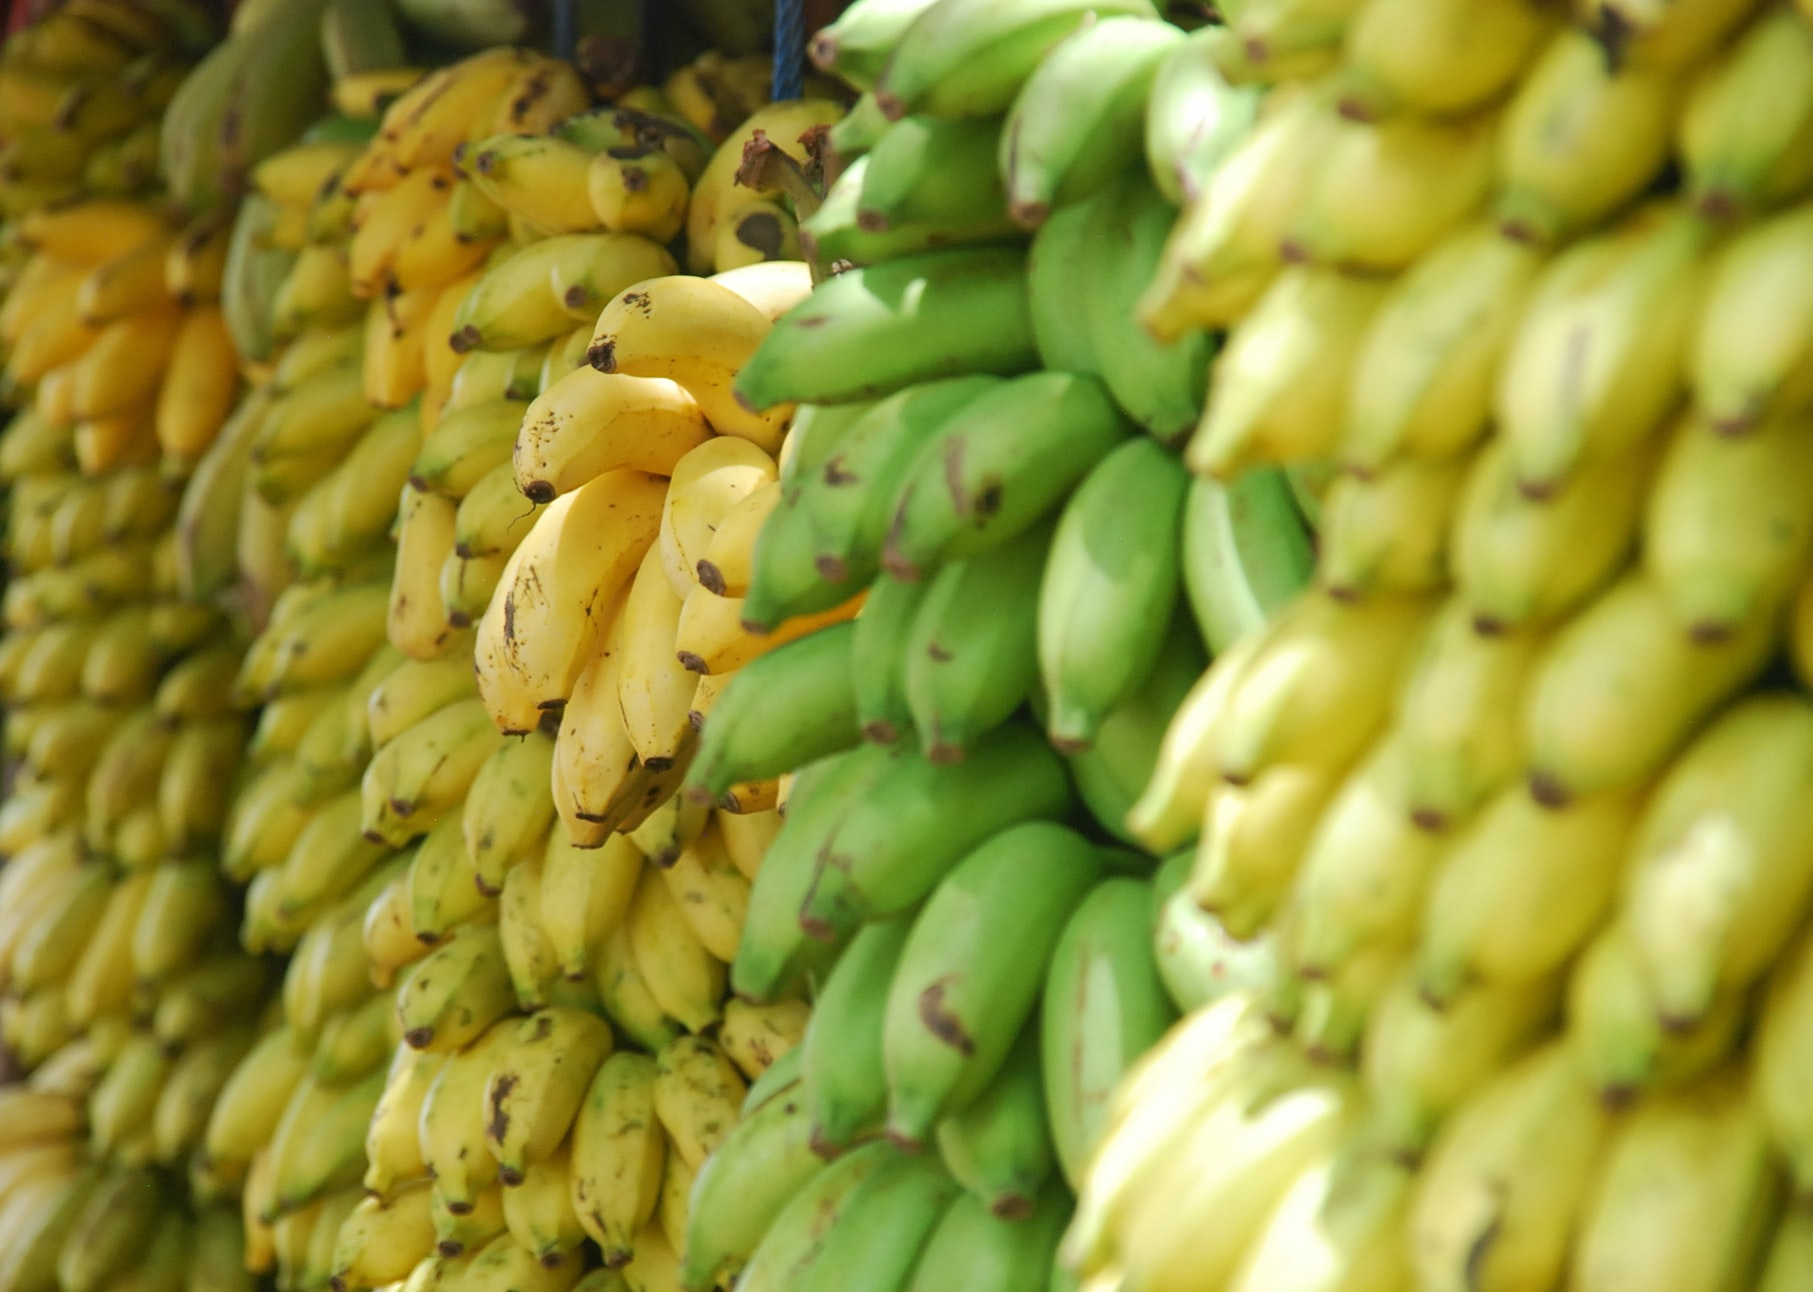 Stacks of yellow and green bananas and raw plantains